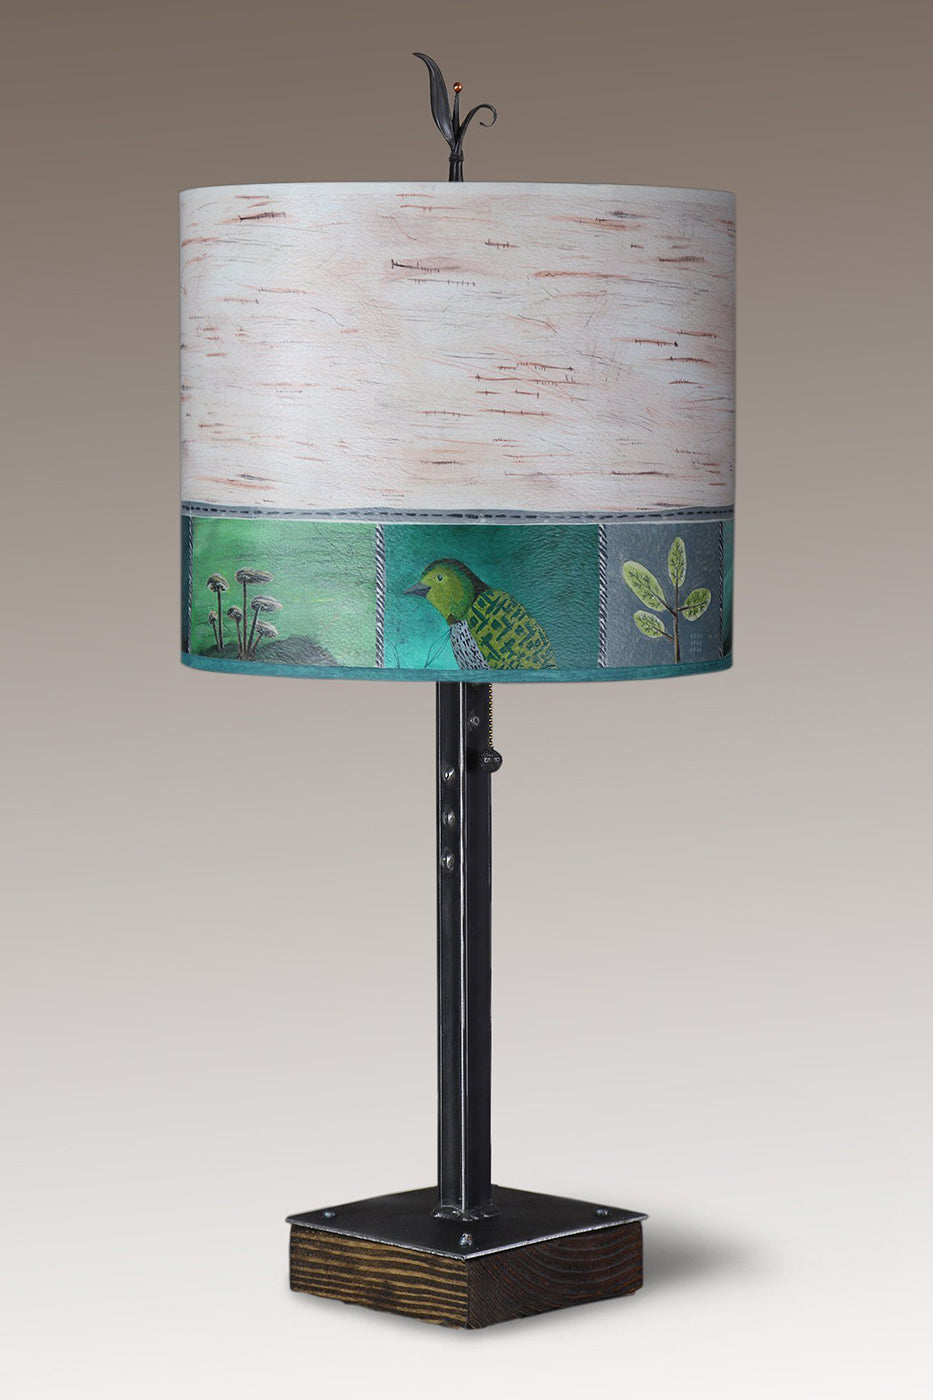 Steel Table Lamp on Wood with Large Oval Shade in Woodland Trails in Birch